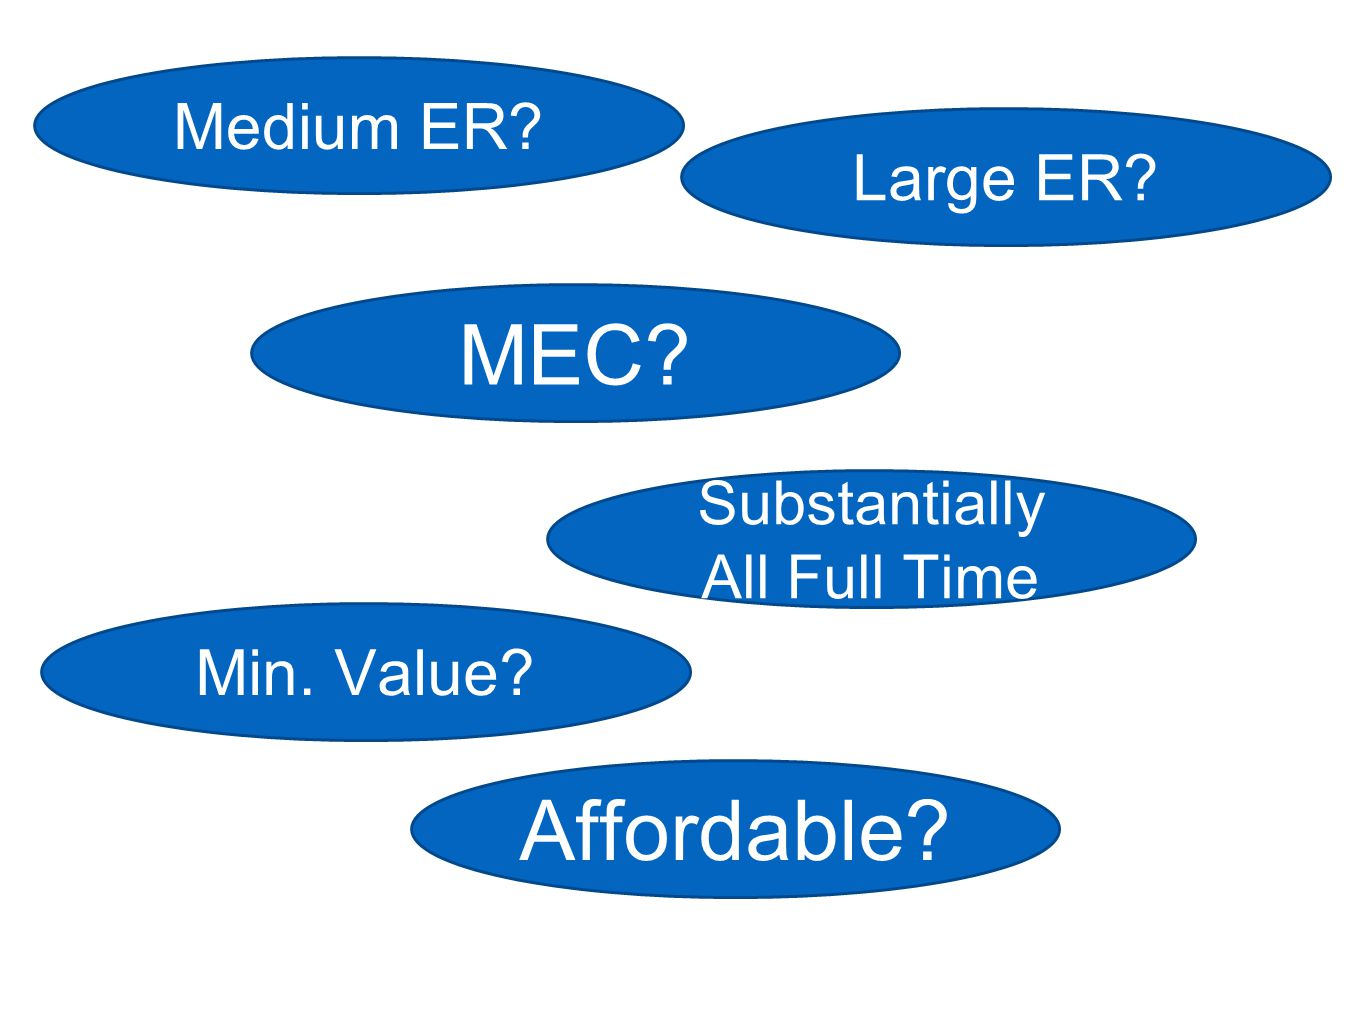 Min. Value? Affordable? To Substantially All Full Time EEs? MEC? Medium ER? Large ER?